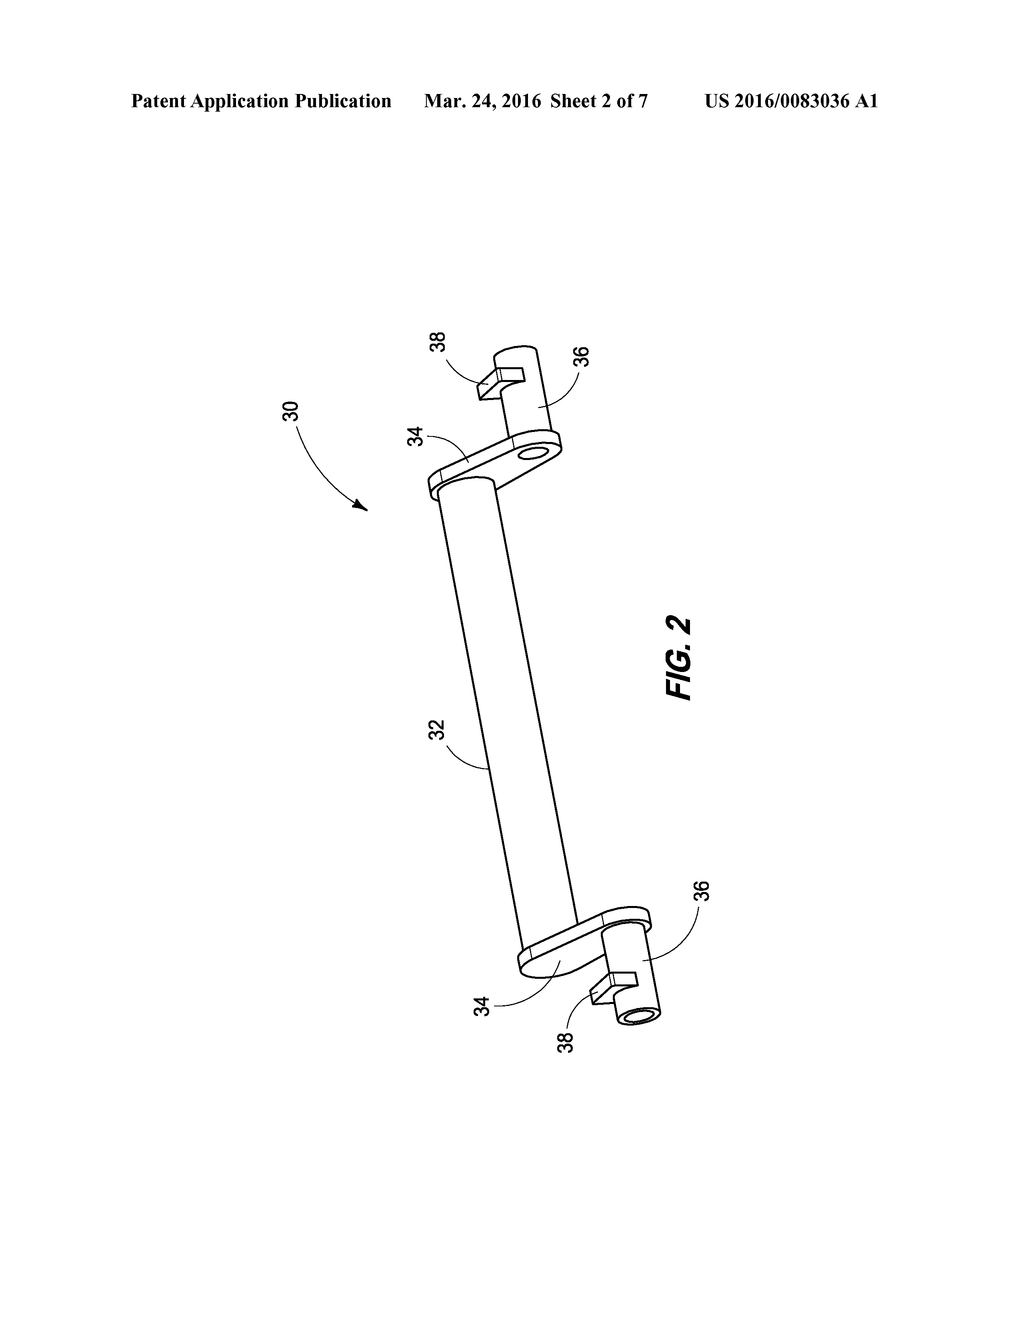 hight resolution of electric motorcycles having crash bars and methods for modifying an accident diagram software crash bar diagram